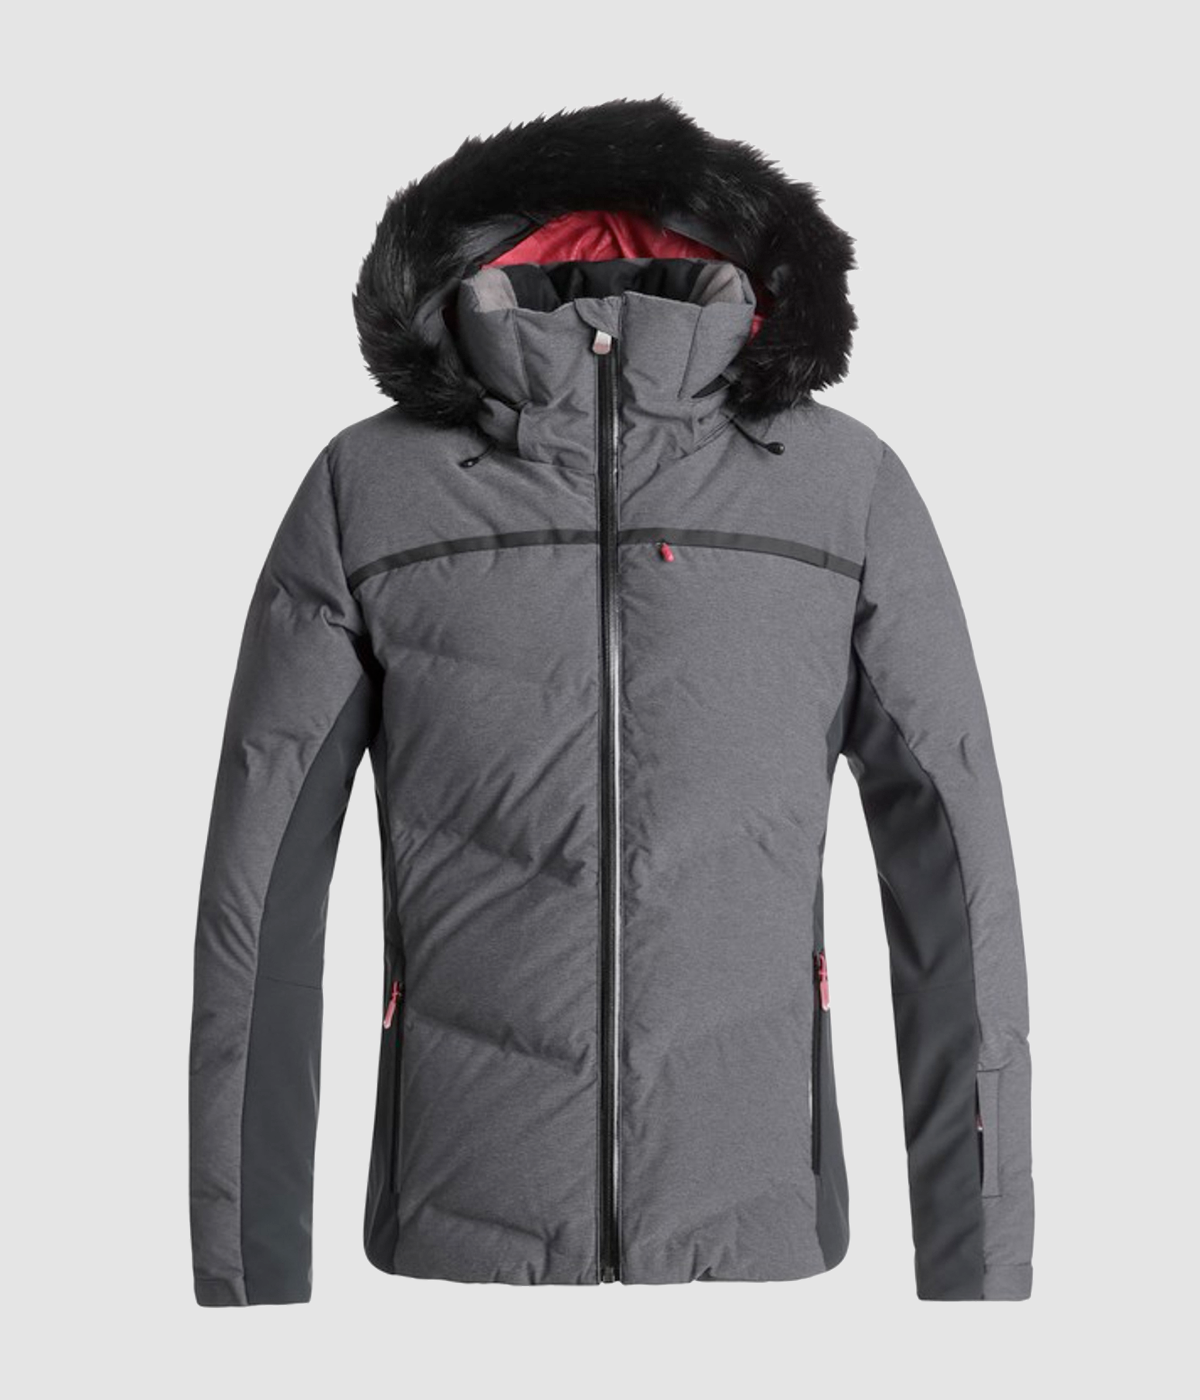 Roxy Snowstorm - Quilted Snow Jacket for Women gift idea